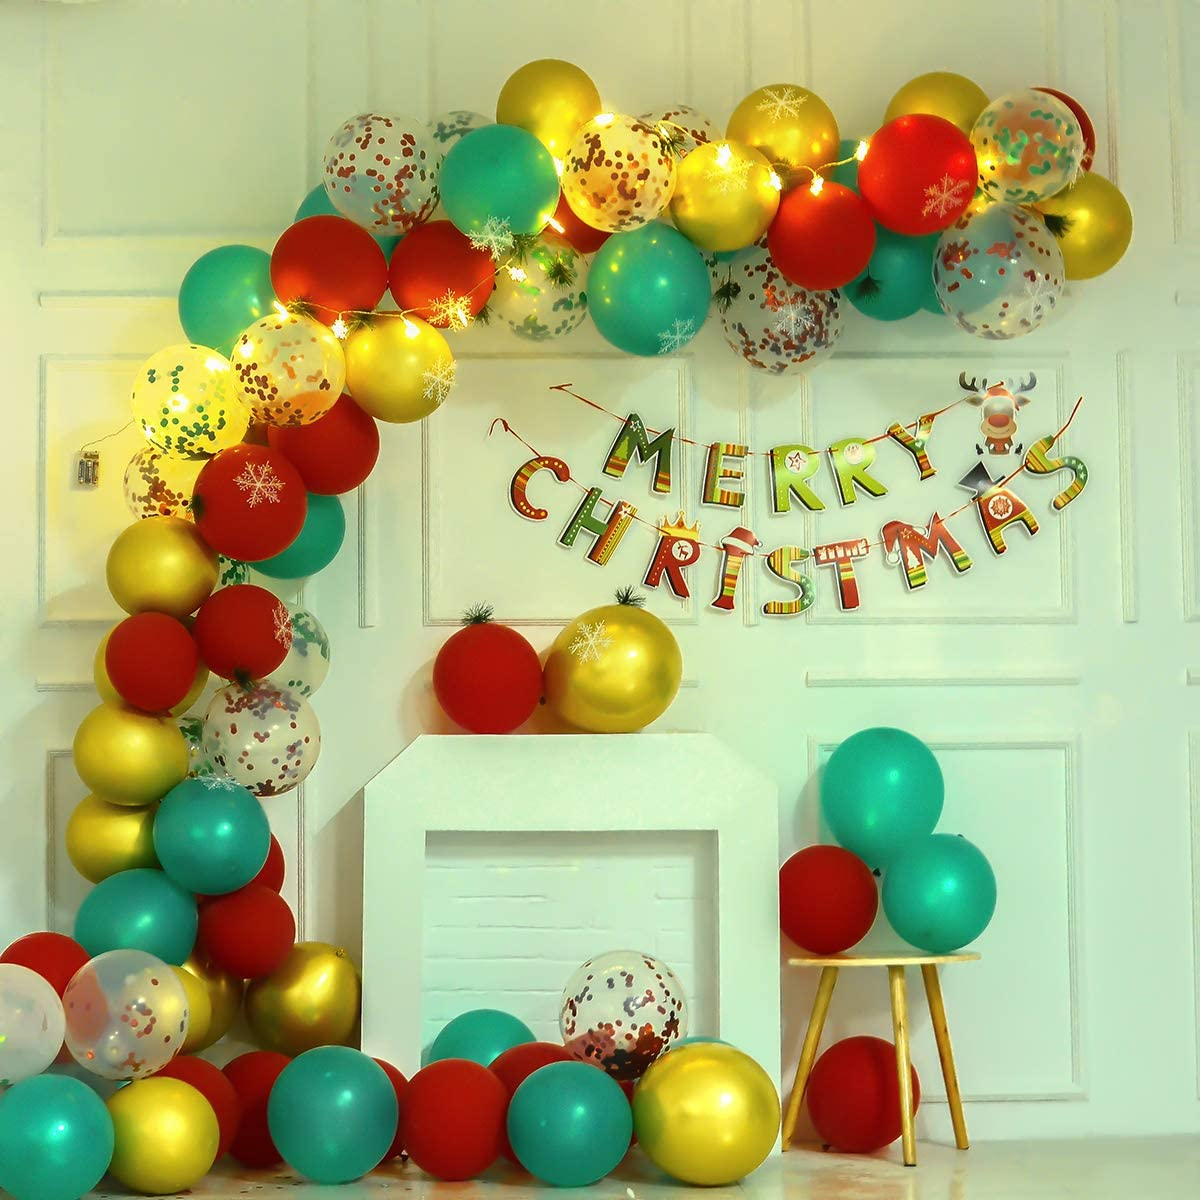 183 Pieces Christmas Balloon Arch Garland Kit, Include Green Red Pearlescent Balloon Red Green Confetti Balloons Gold Metallic Balloons, Pine Needles, Snowflake, Strip Tape, Adhesive Dots, Balloon Air Pump, Merry Christmas Banner, Snowflake lights